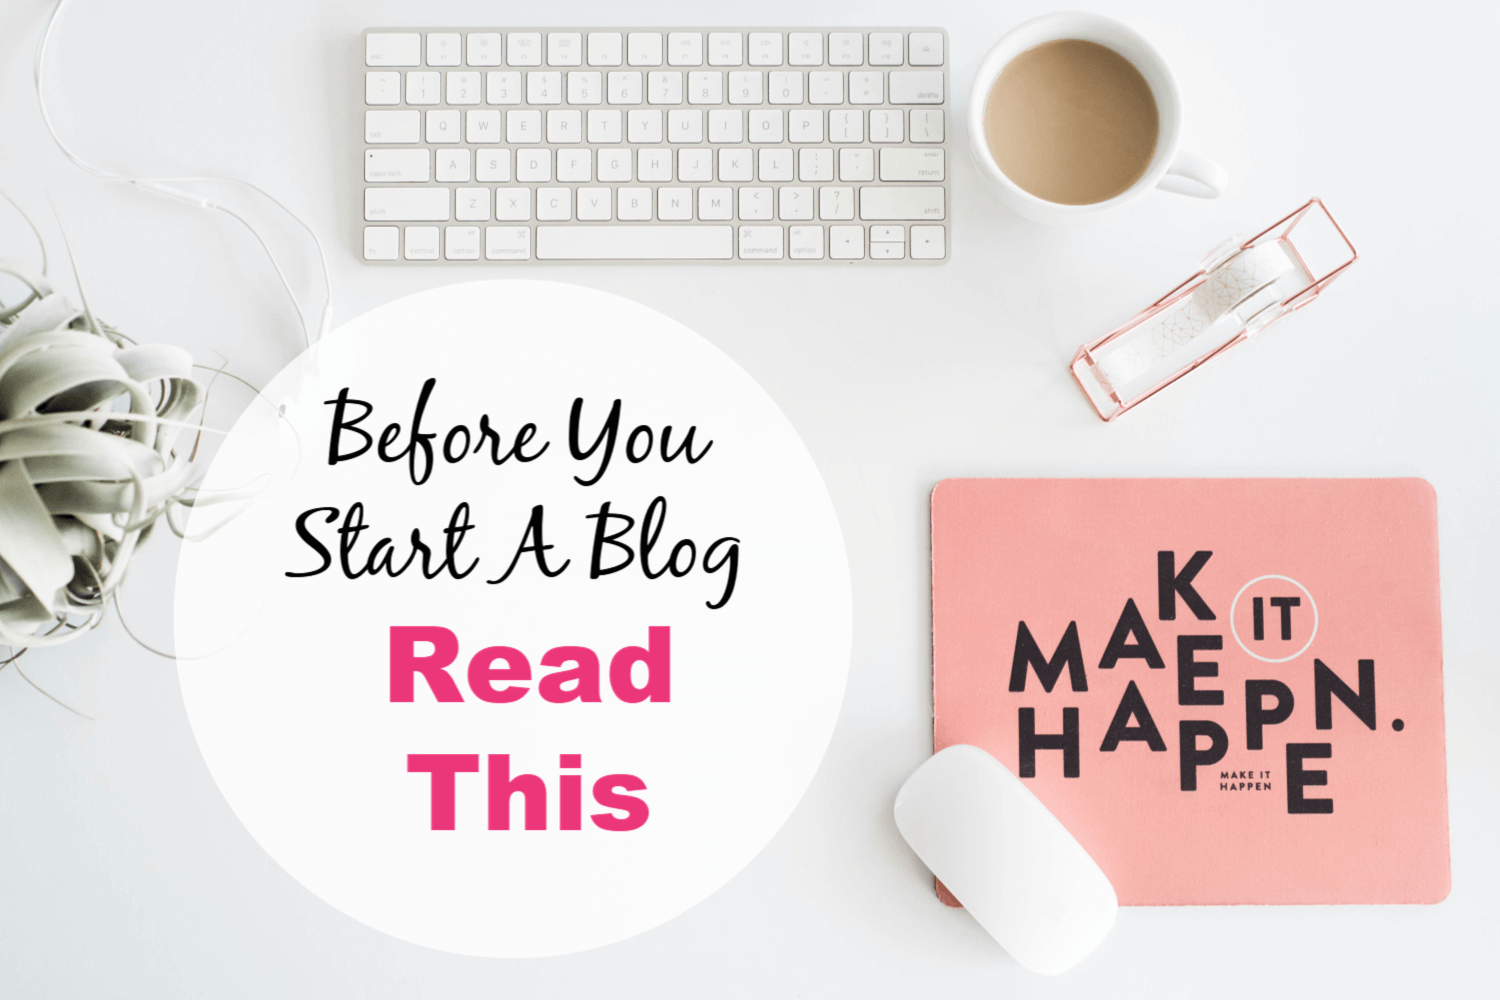 Before You Start A Blog Read This!